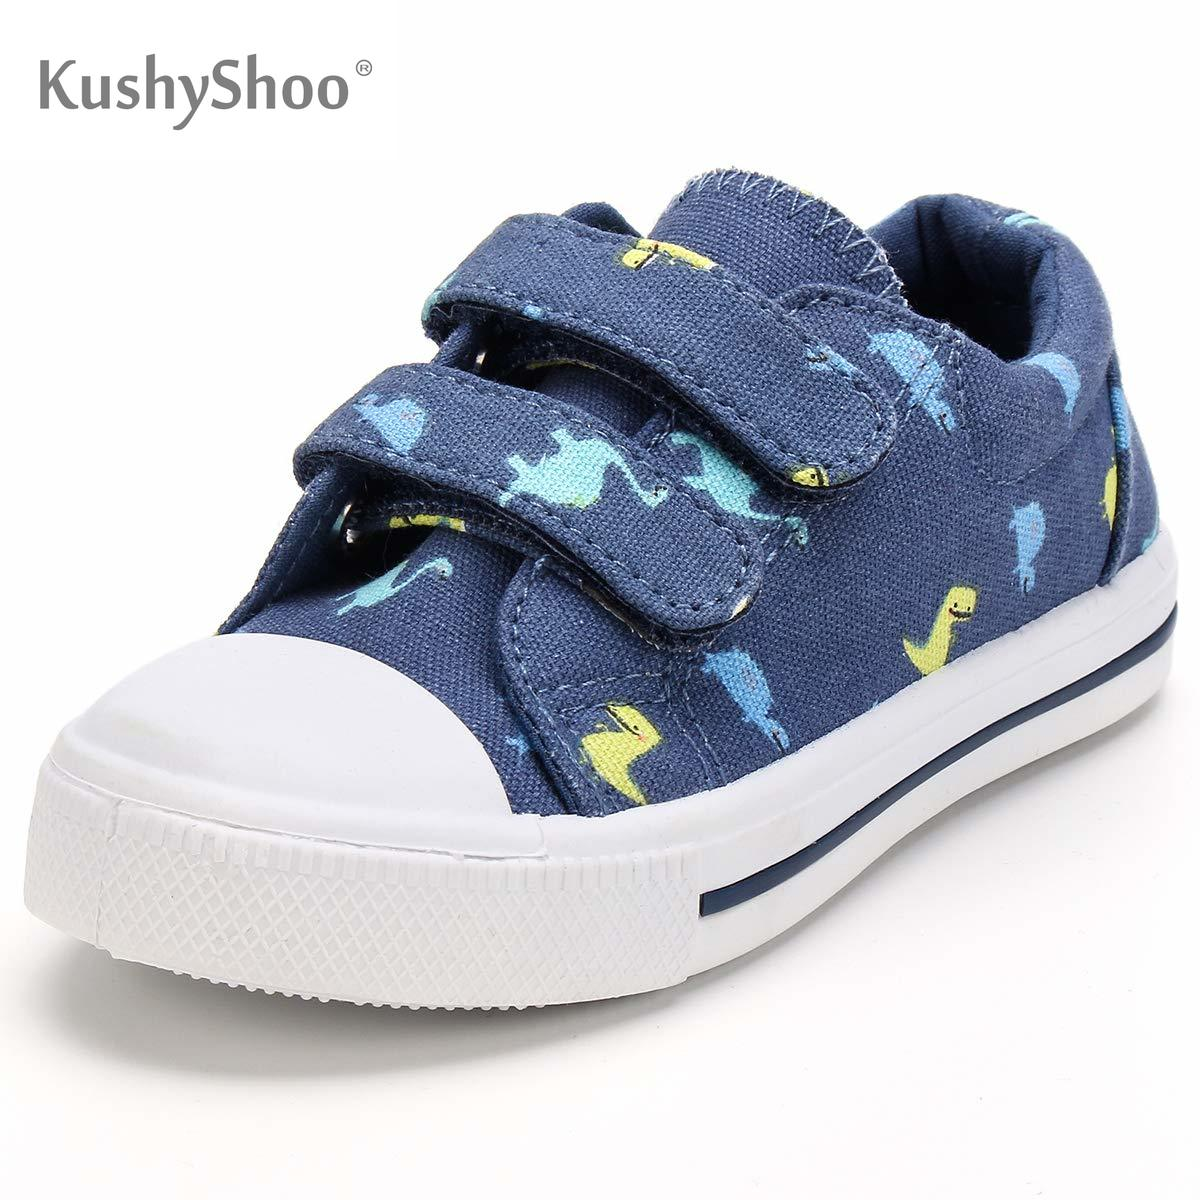 Unisex Kids Hook and Loop Canvas Sneakers White Lines Casual School Shoes